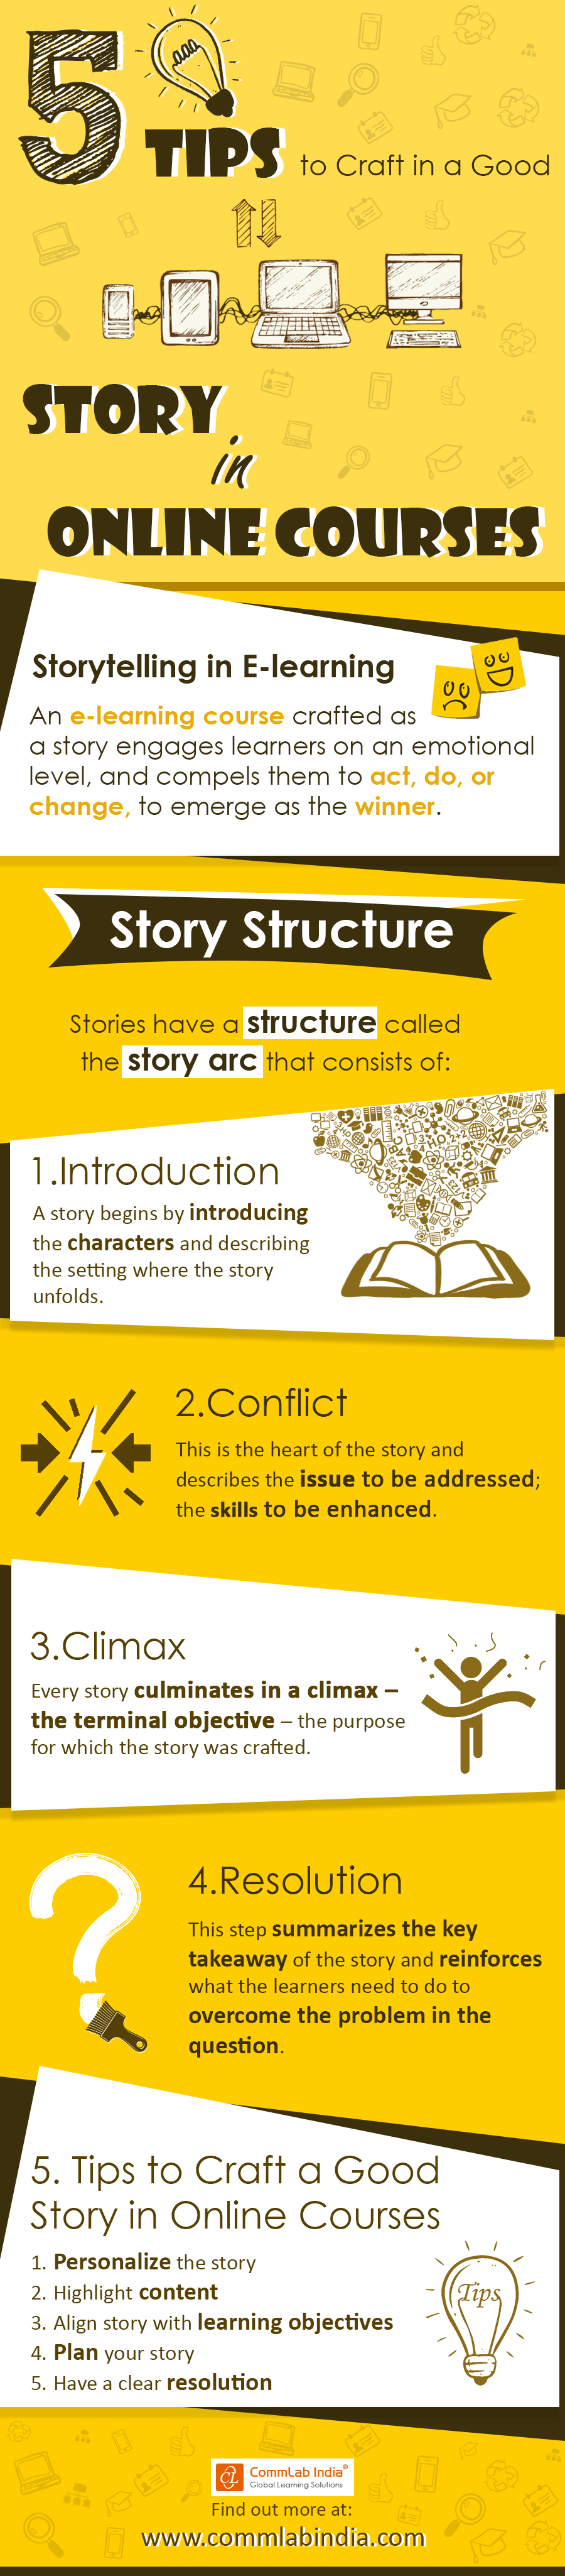 5 Tips to Craft a Good Story in Online Courses [Infographic]